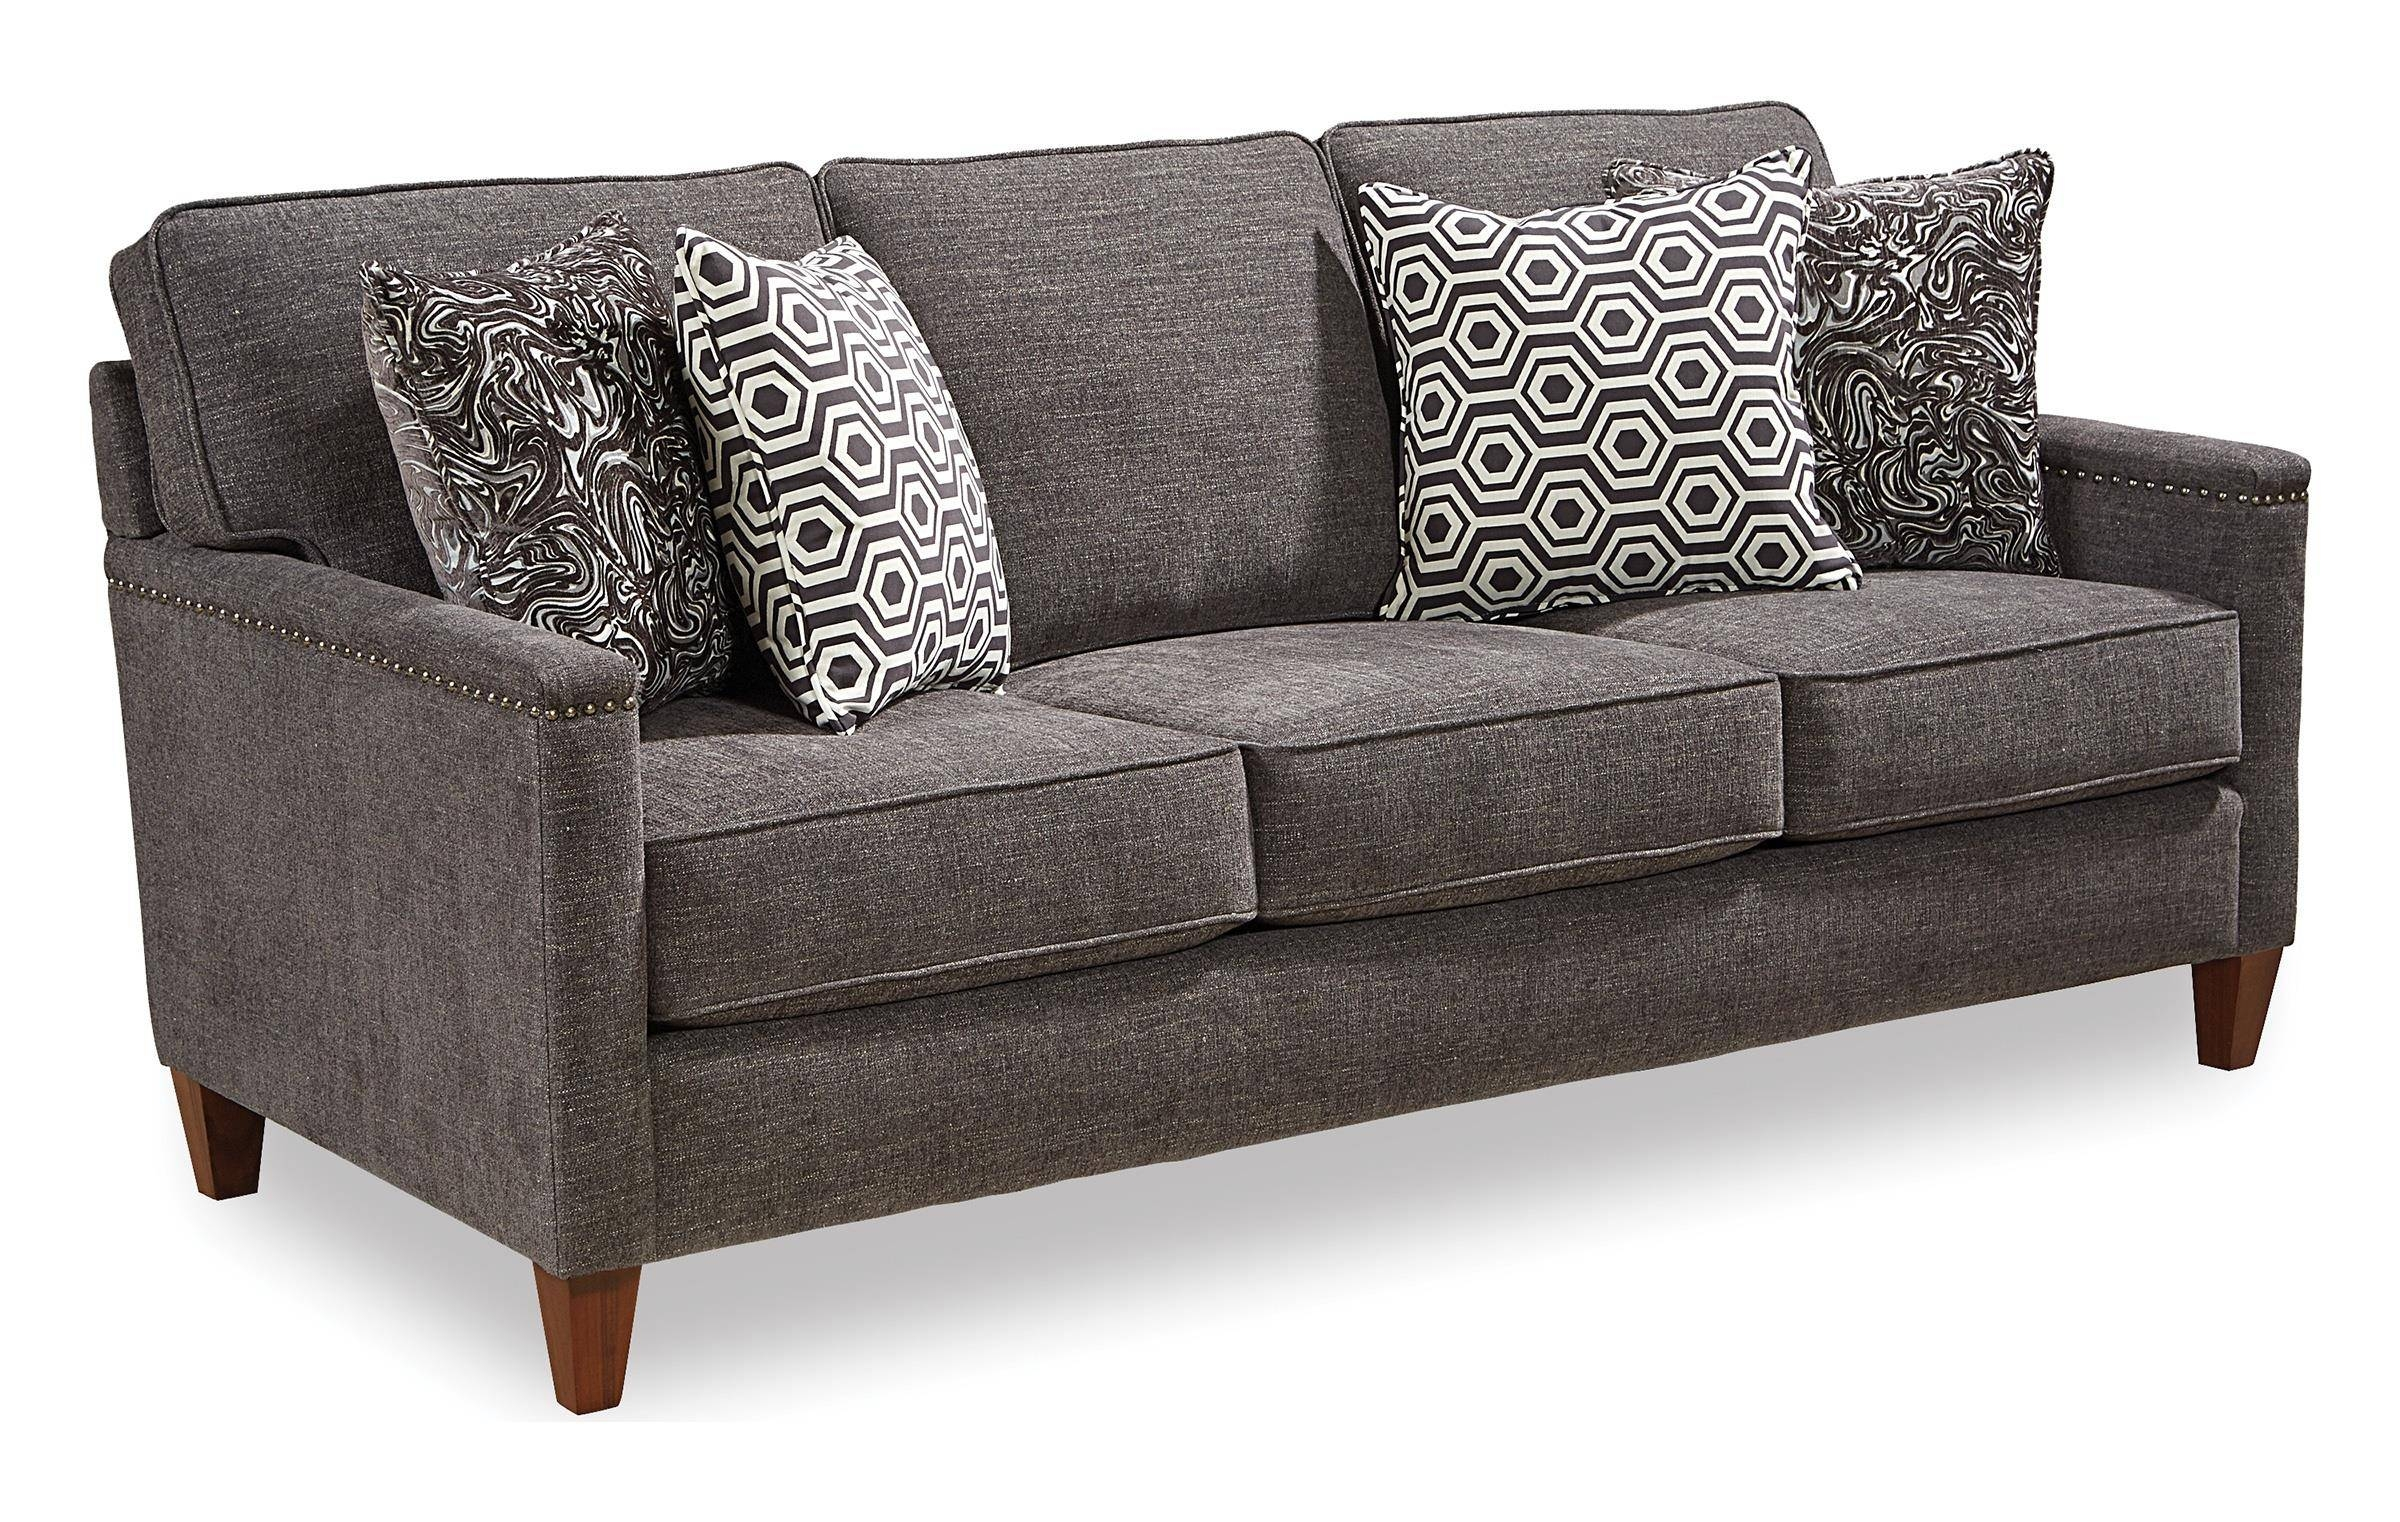 Broyhill Furniture Lawson Contemporary Sofa With Track Arms And intended for Broyhill Sectional Sofas (Image 11 of 30)